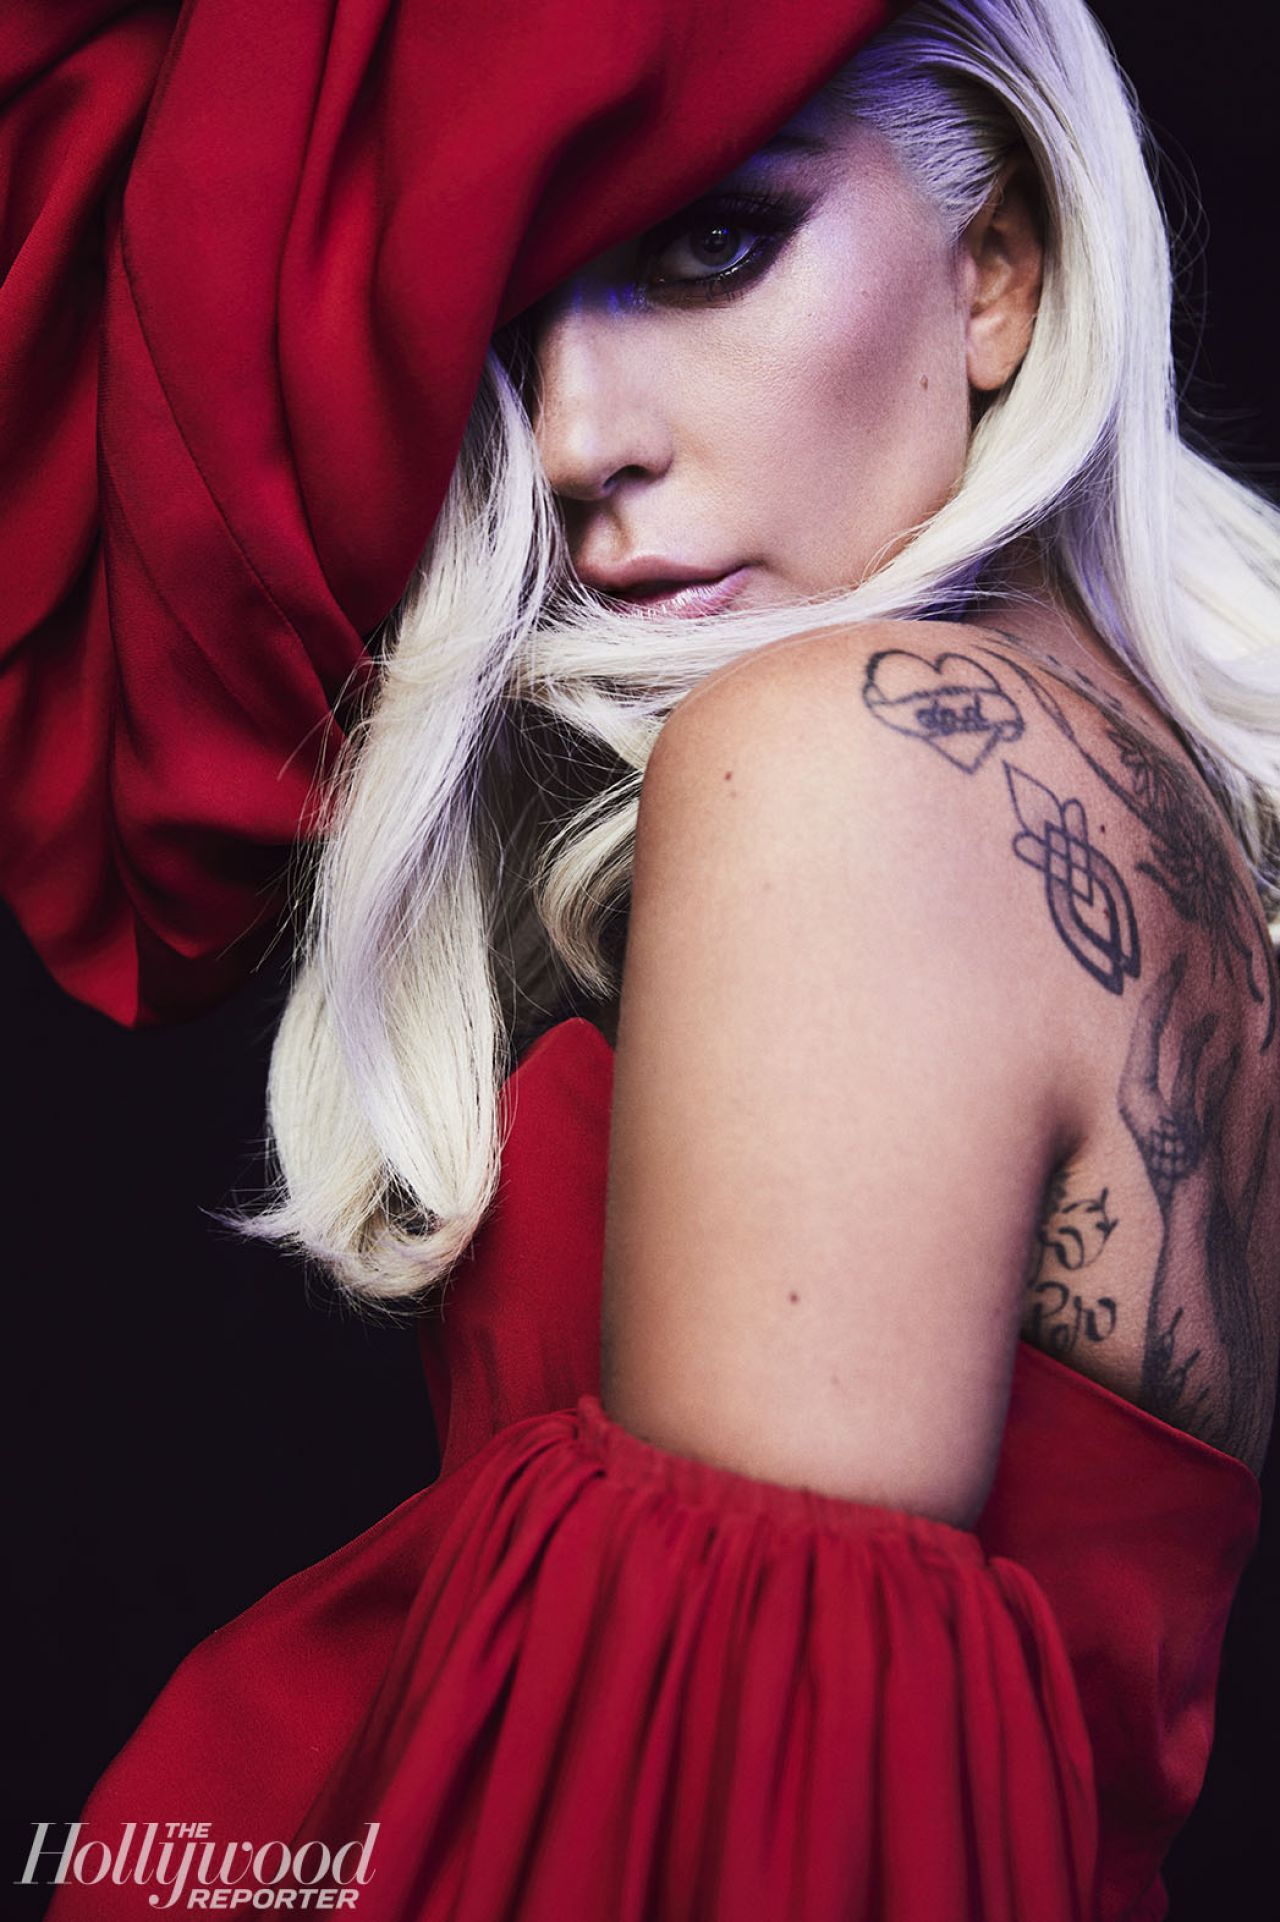 Lady Gaga Photoshoot For Hollywood Reporter 2018